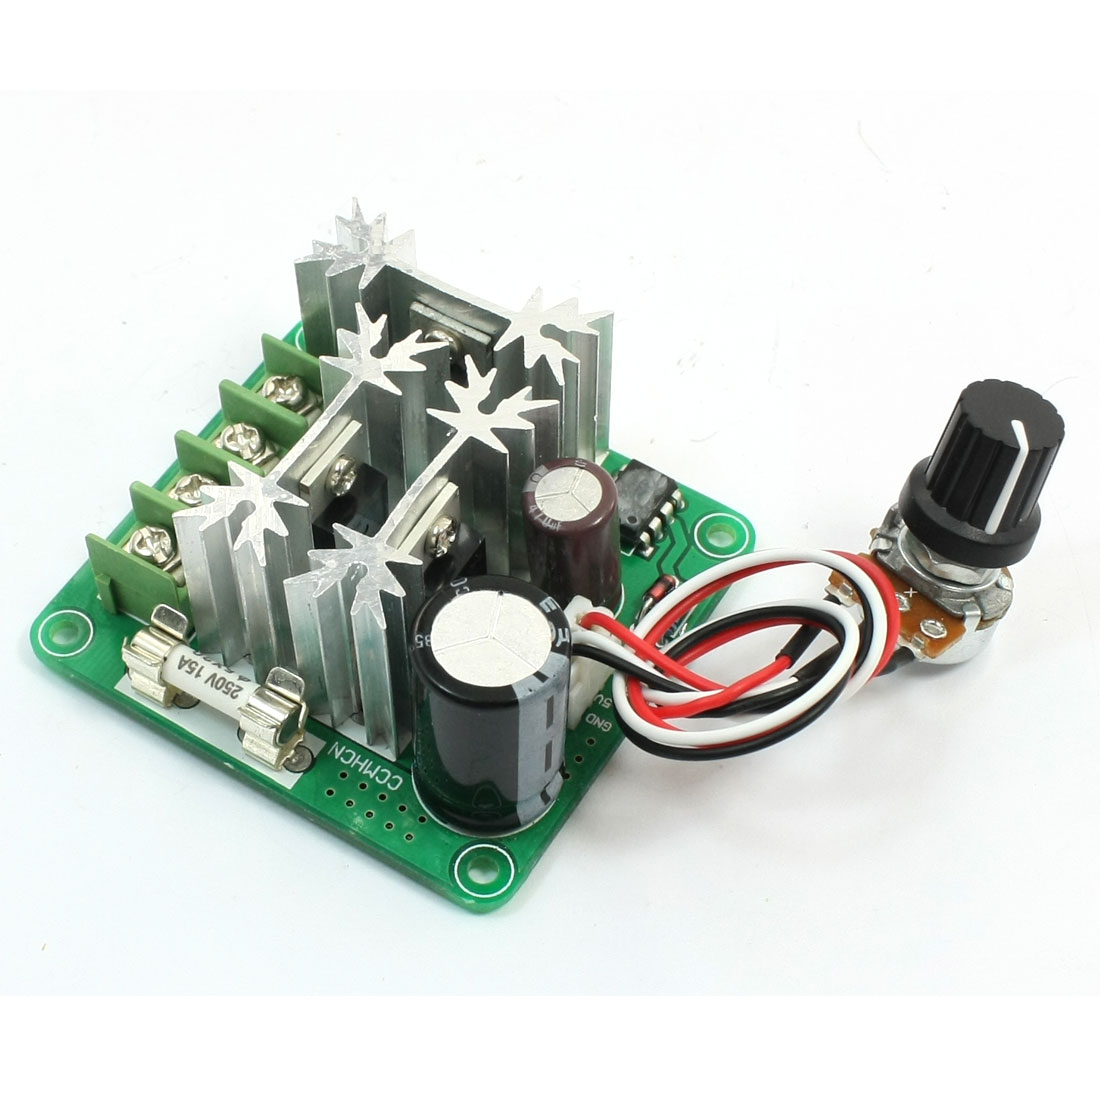 CCMHCN 6V-90V 15A 1000W PWM DC Motor Speed Regulation Controller